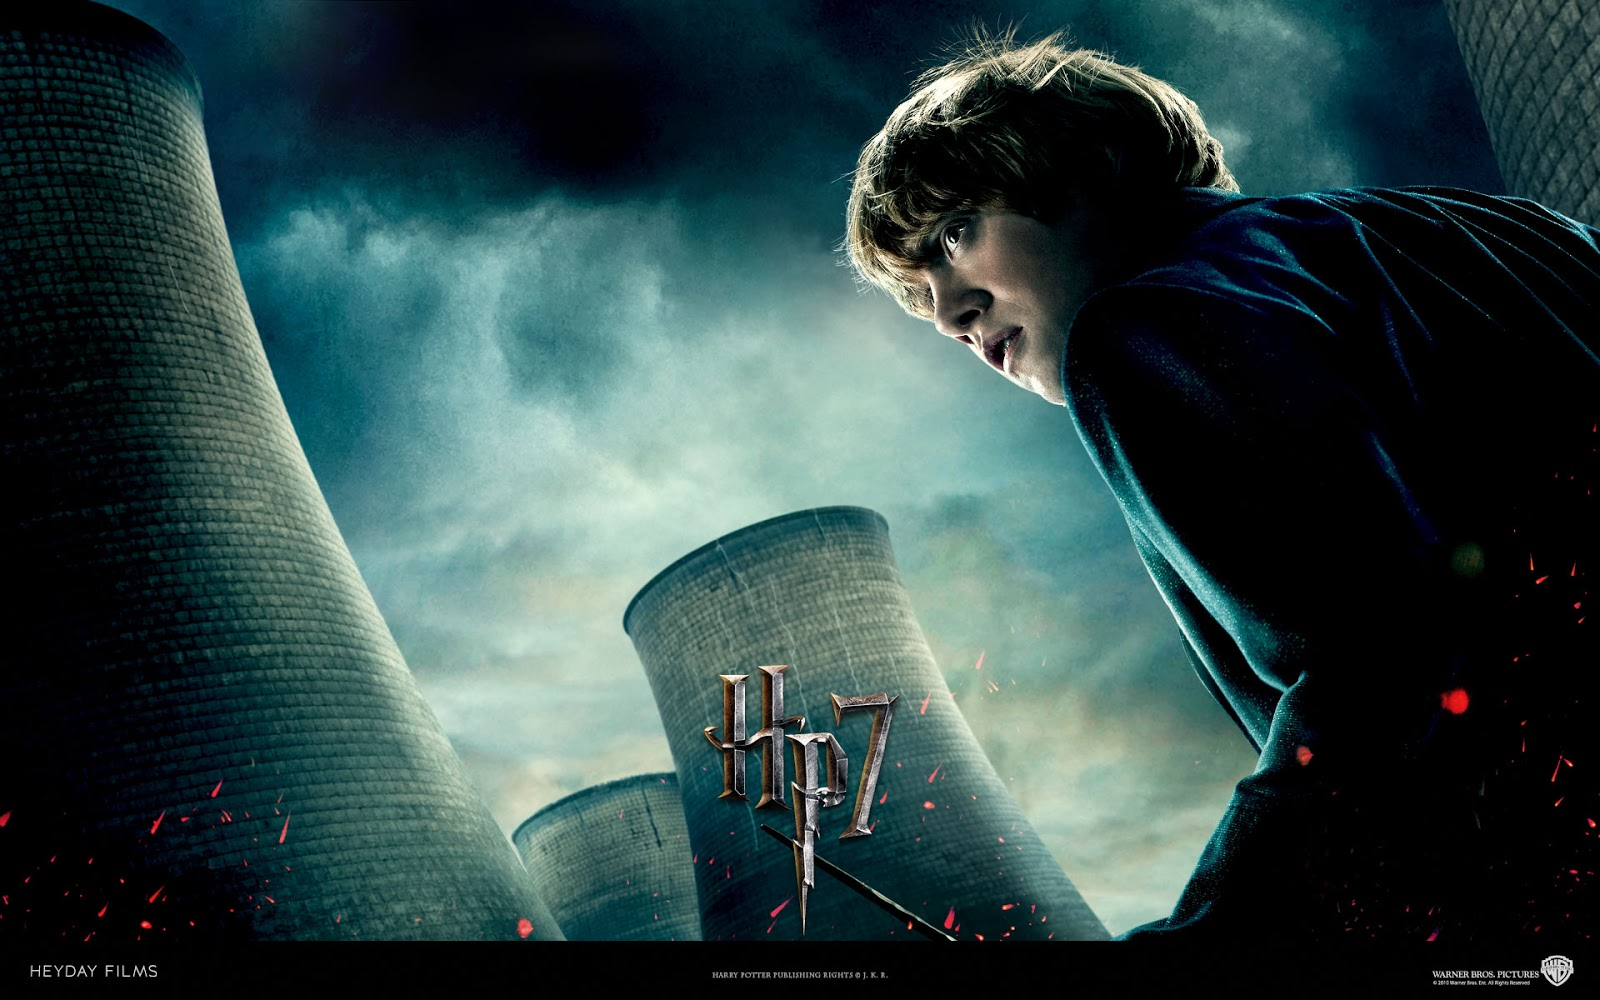 Harry Potter Deathly Hallows Wallpaper Ron Weasley